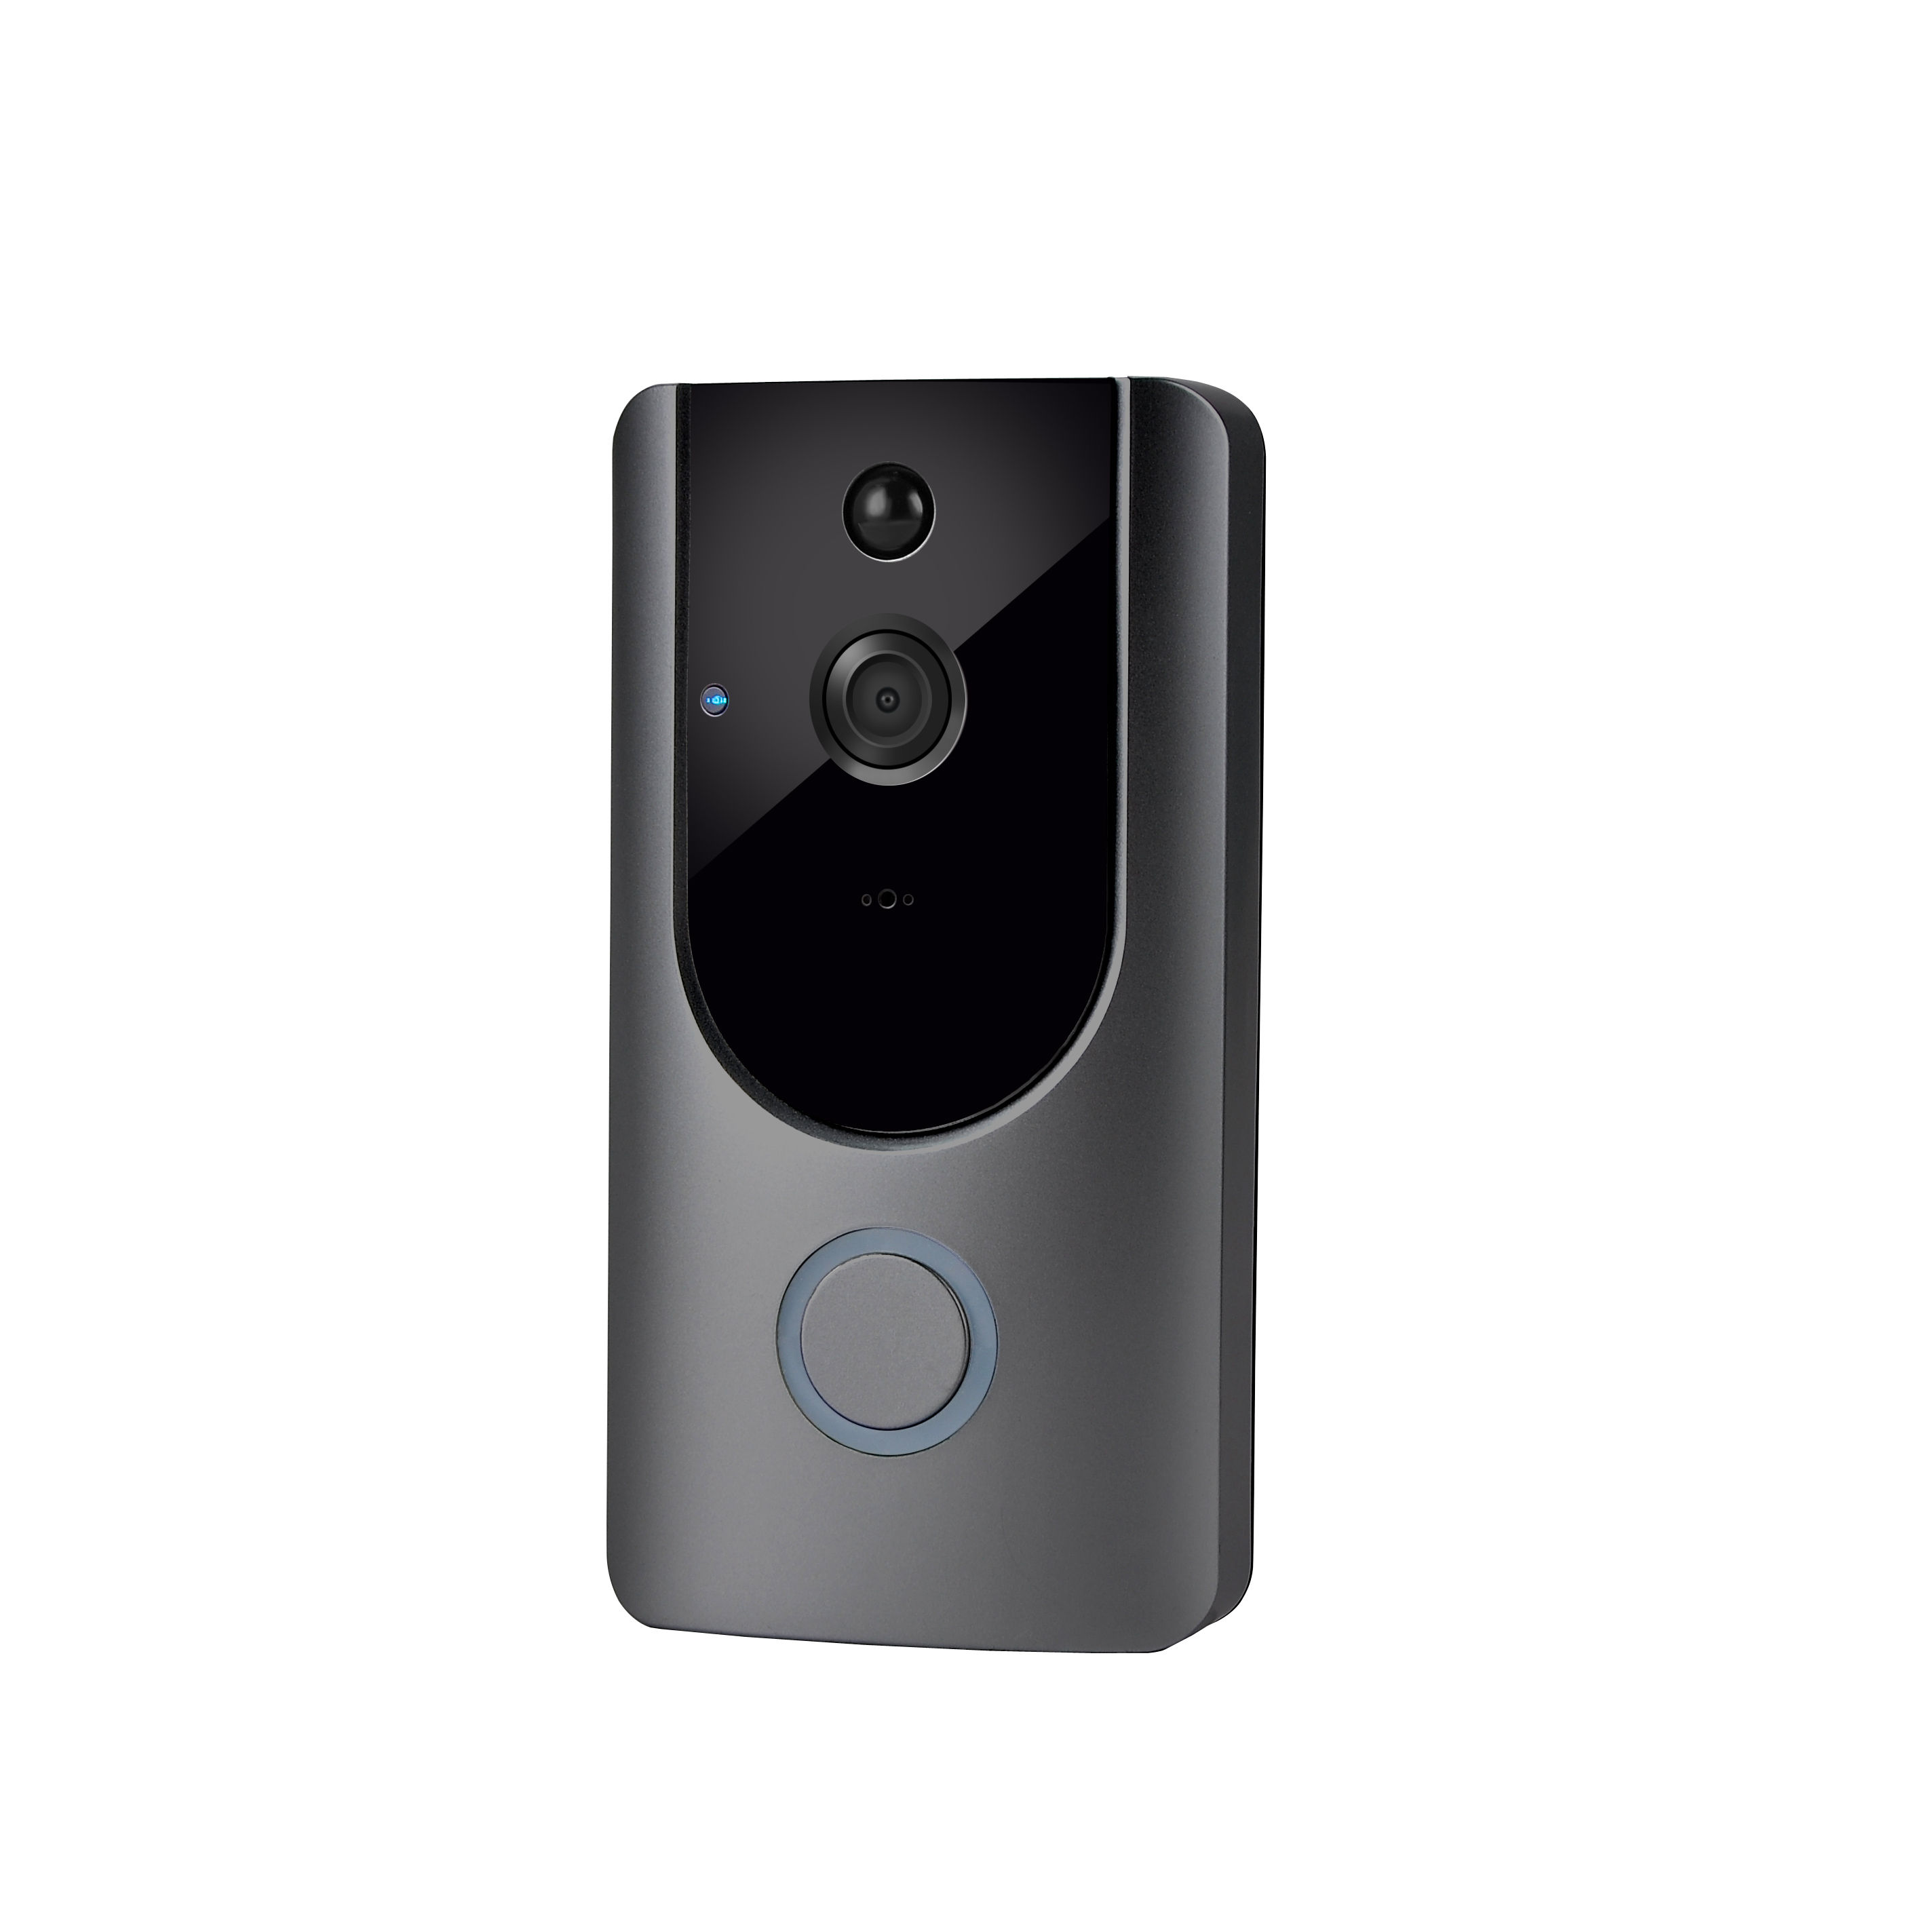 New WiFi Video Doorbell with Storage and Two-Way Talk Smart Doorbell Security Camera PIR Motion Detection Video Door bell timbre